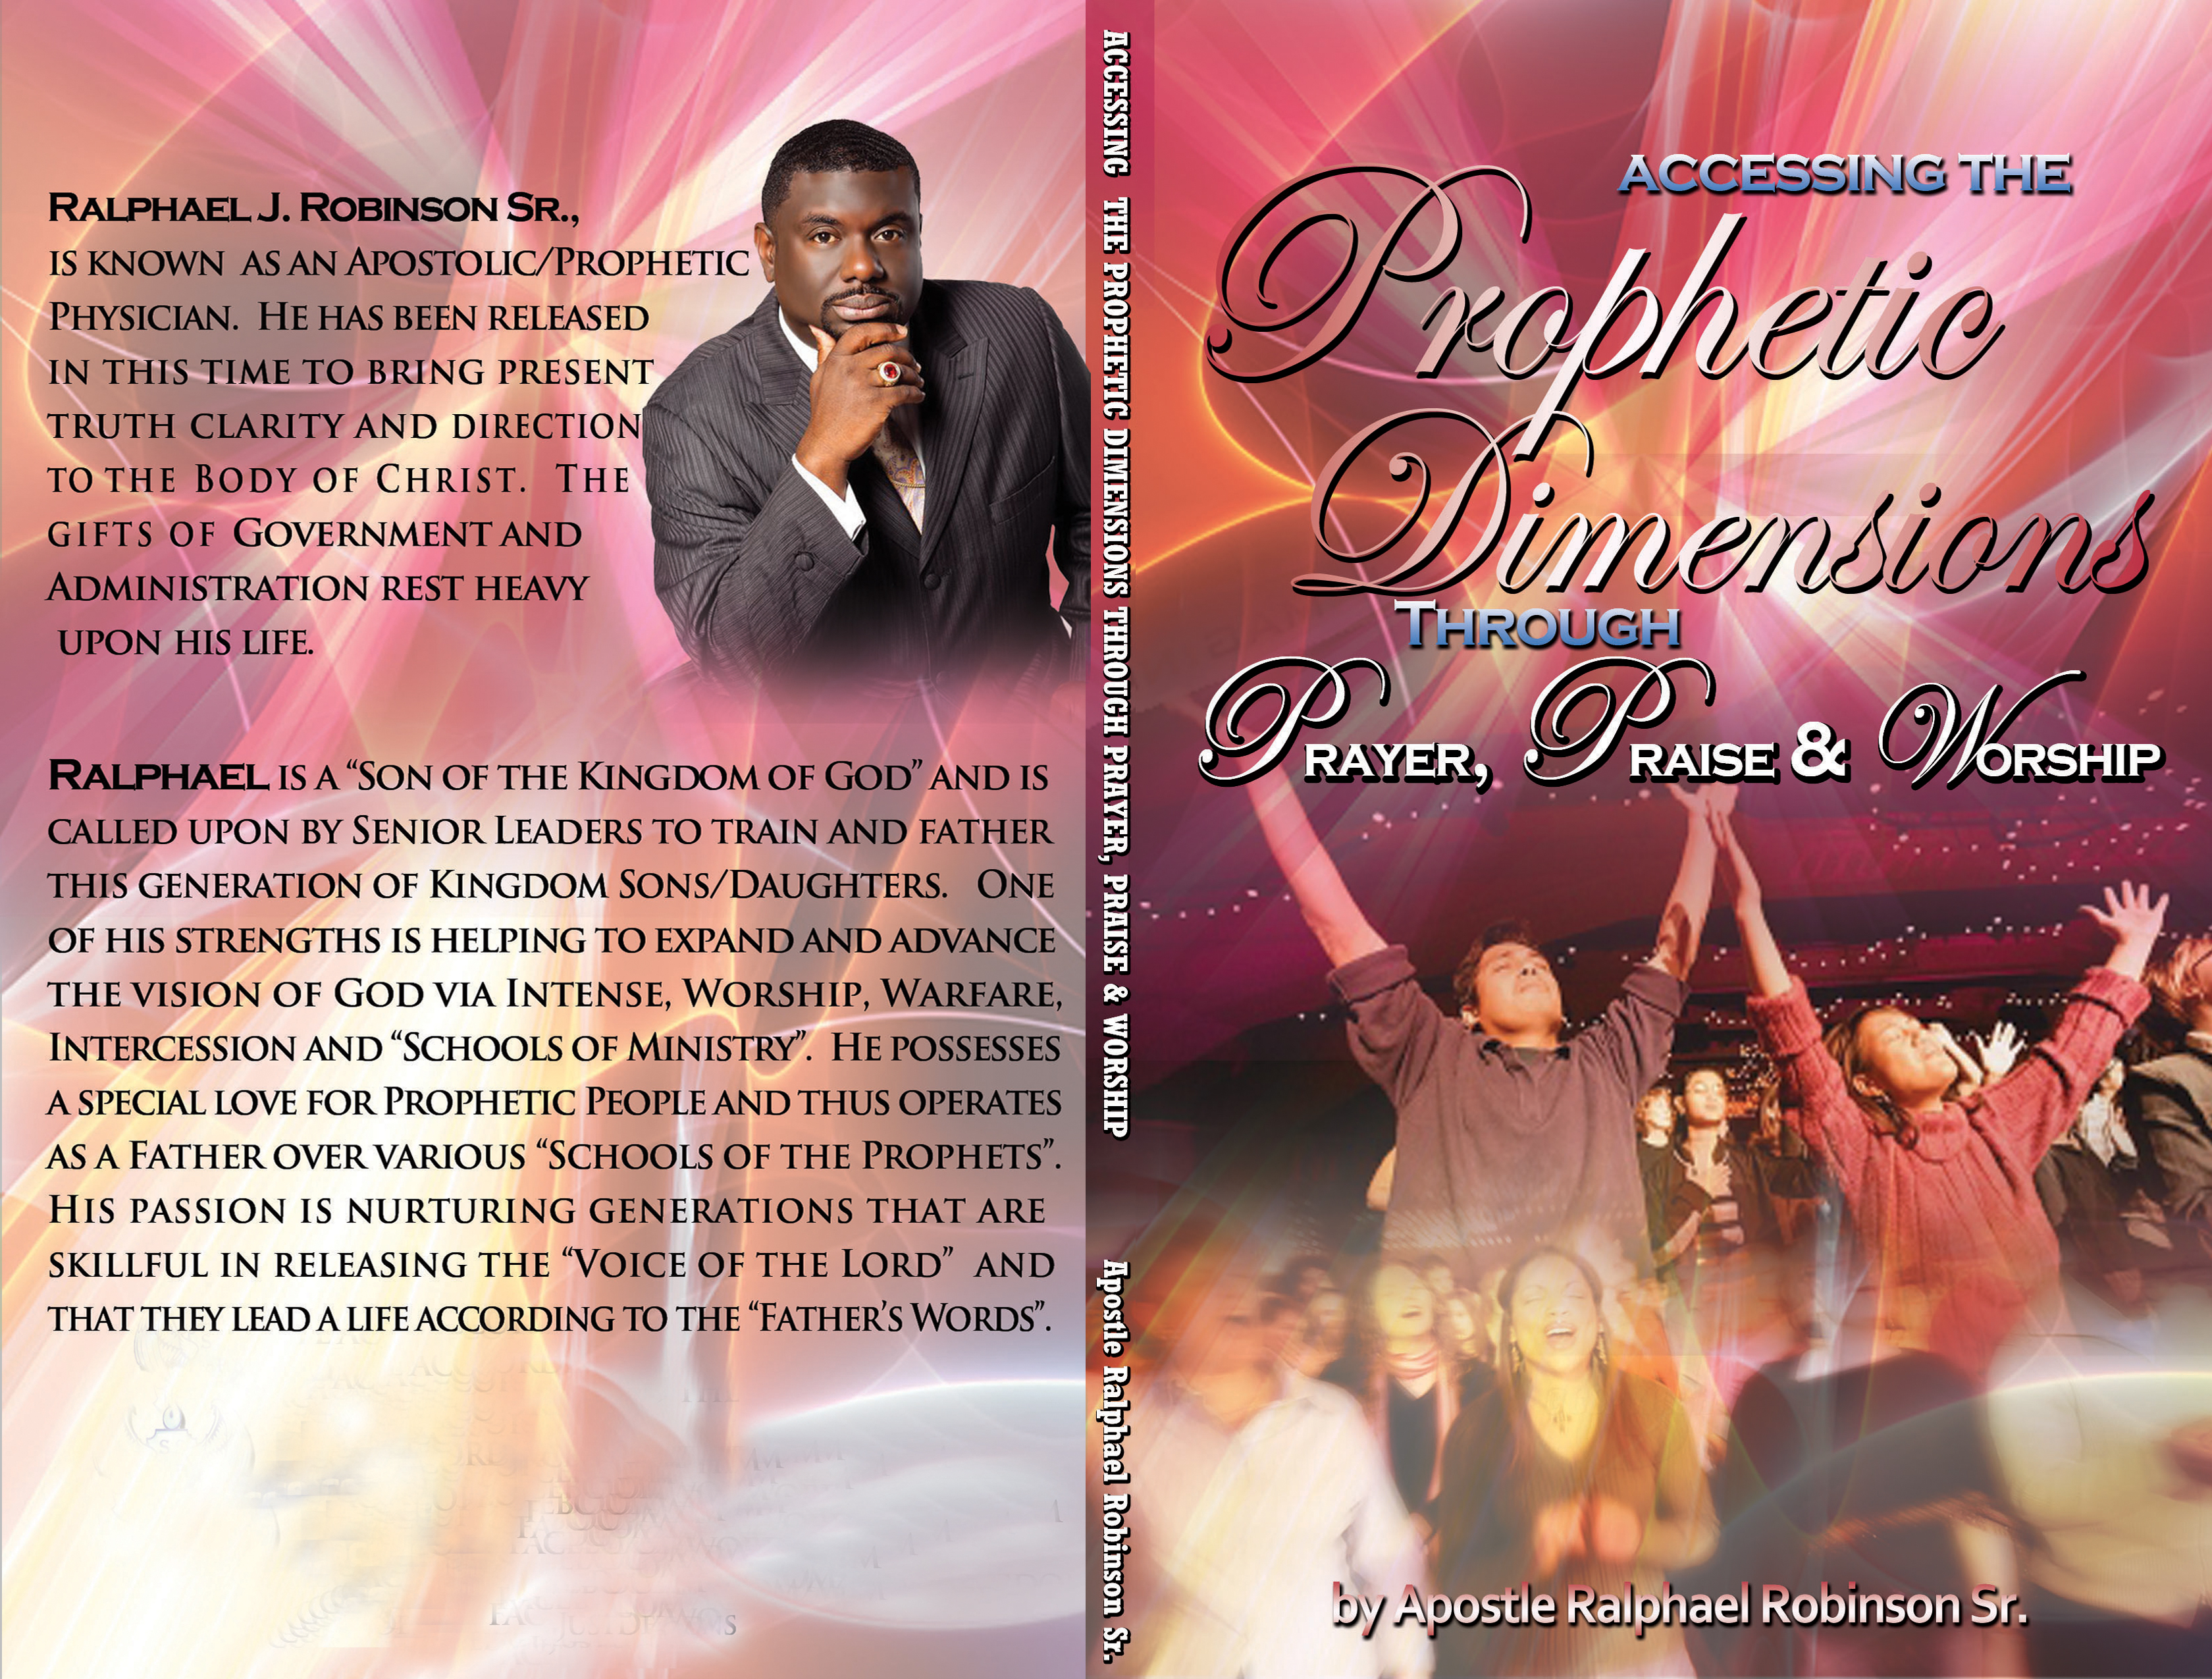 Accessing the Prophetic Dimension through Prayer Praise and Worship, an  Ebook by Ralphael Robinson